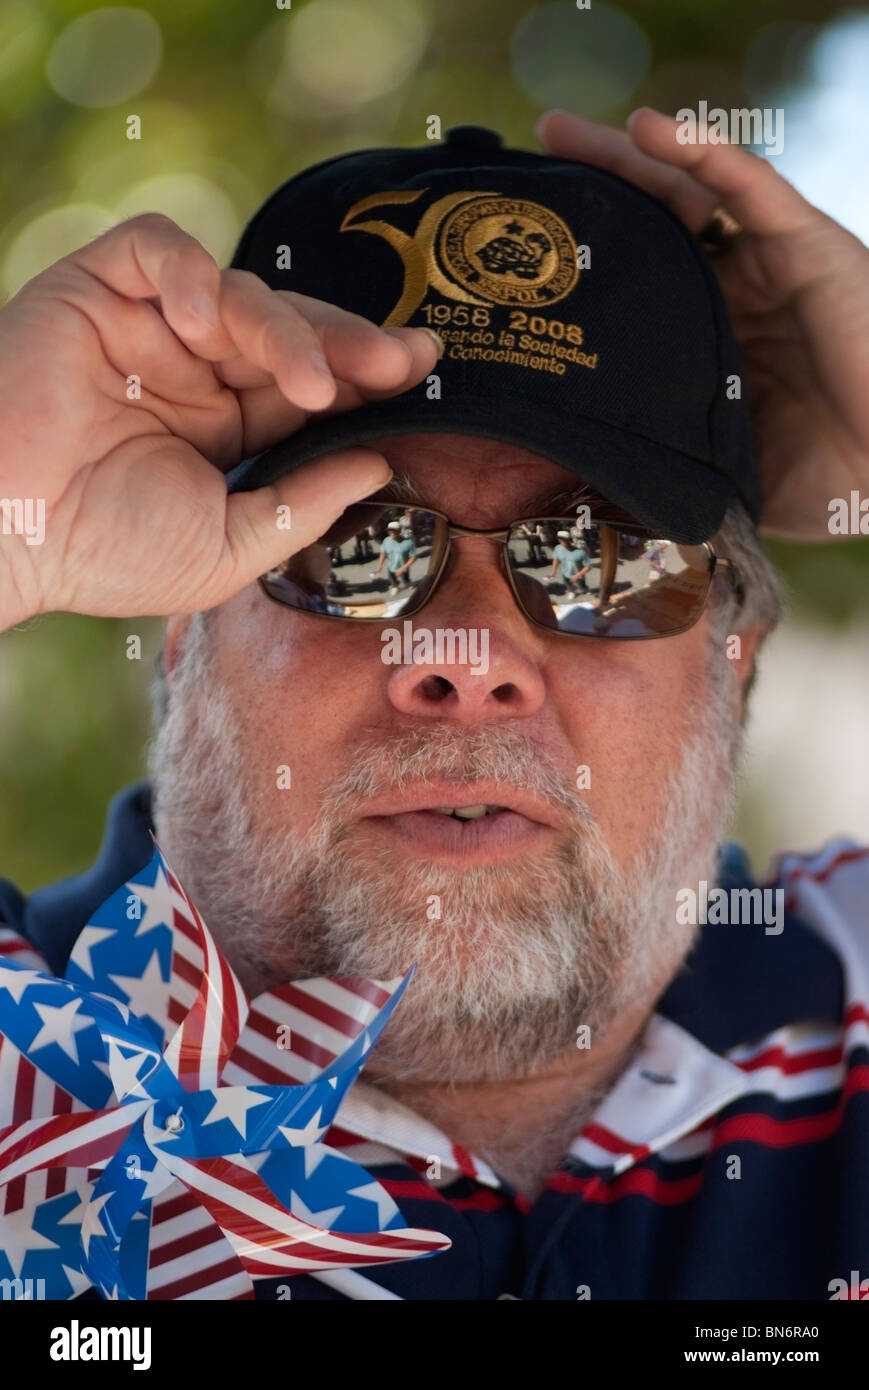 Steve Wozniak, Apple Inc. co-founder was the Grand Marshall in the 2010 Rose, White & Blue 4th of July Parade - Stock Image